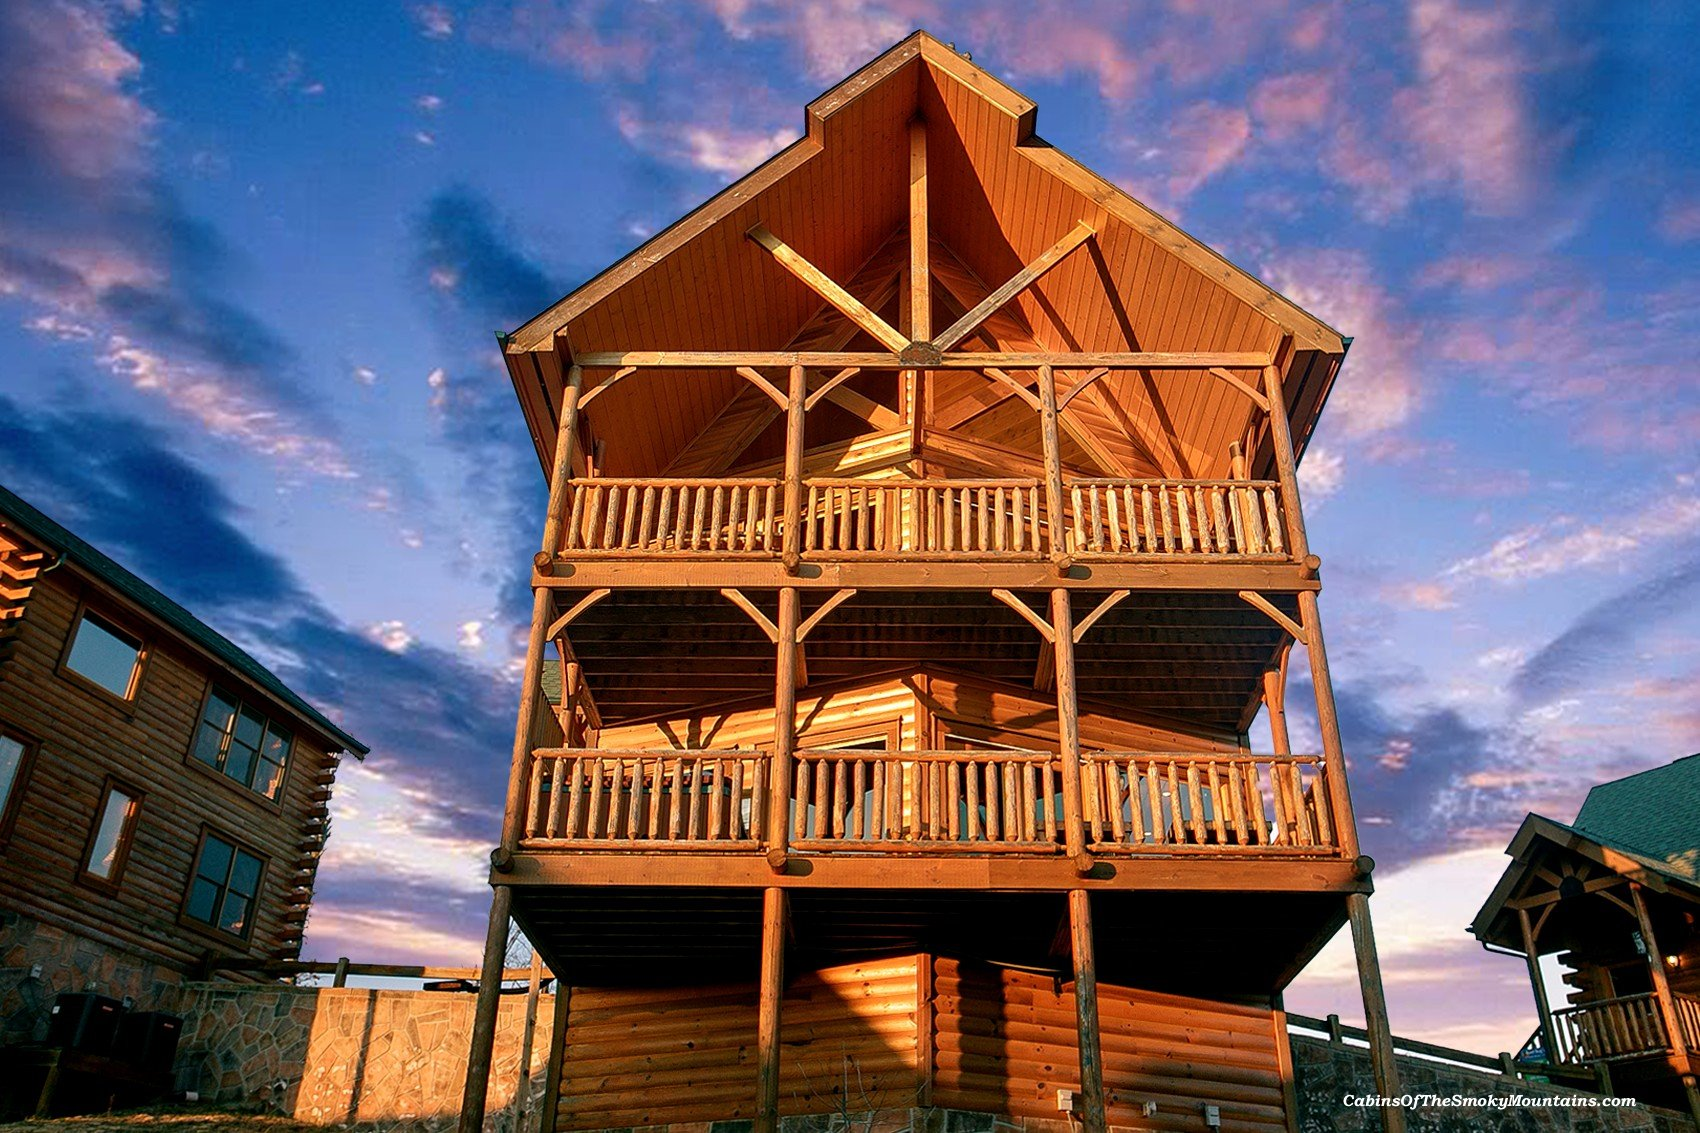 htm gatlinburg pet cabin tn forge in img gatlinburgcabinsforrent for cabins rent friendly pigeon rentals